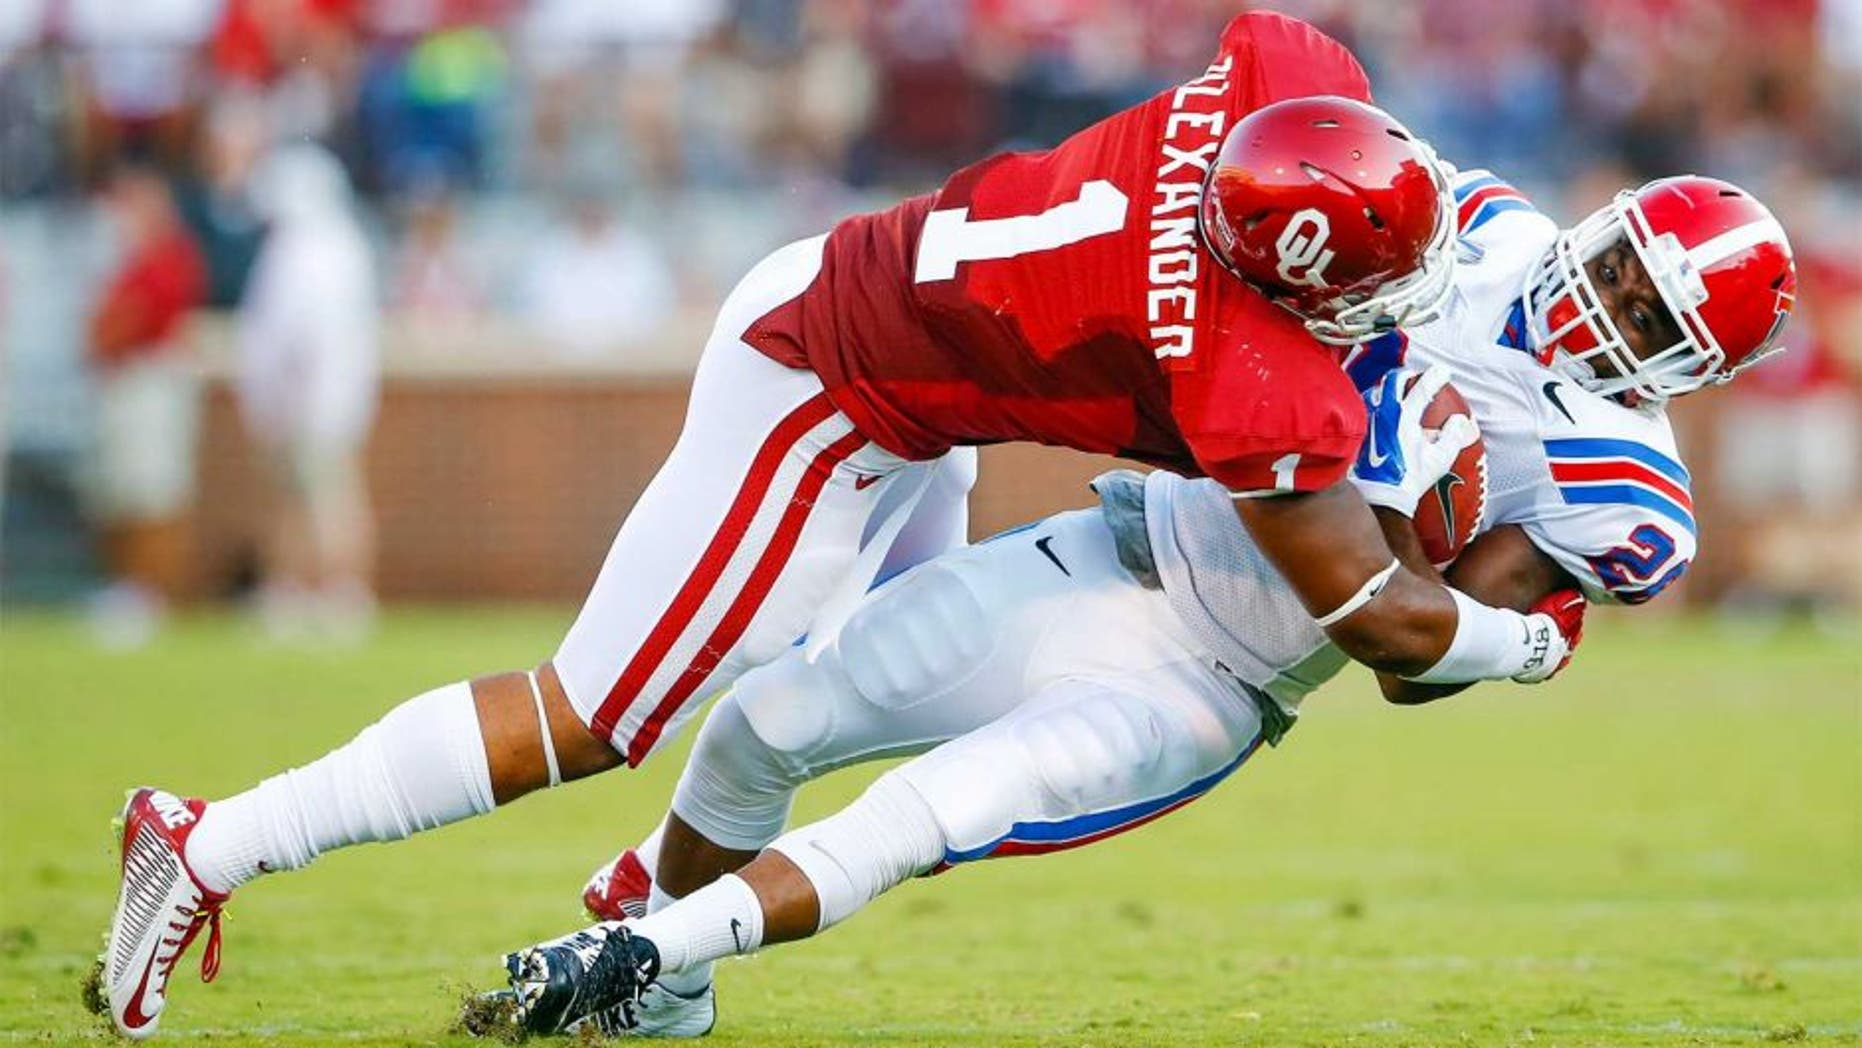 Aug 30, 2014; Norman, OK, USA; Oklahoma Sooners linebacker Dominique Alexander (1) tackles Louisiana Tech Bulldogs running back Kenneth Dixon (28) during the first half at Gaylord Family - Oklahoma Memorial Stadium. Mandatory Credit: Kevin Jairaj-USA TODAY Sports